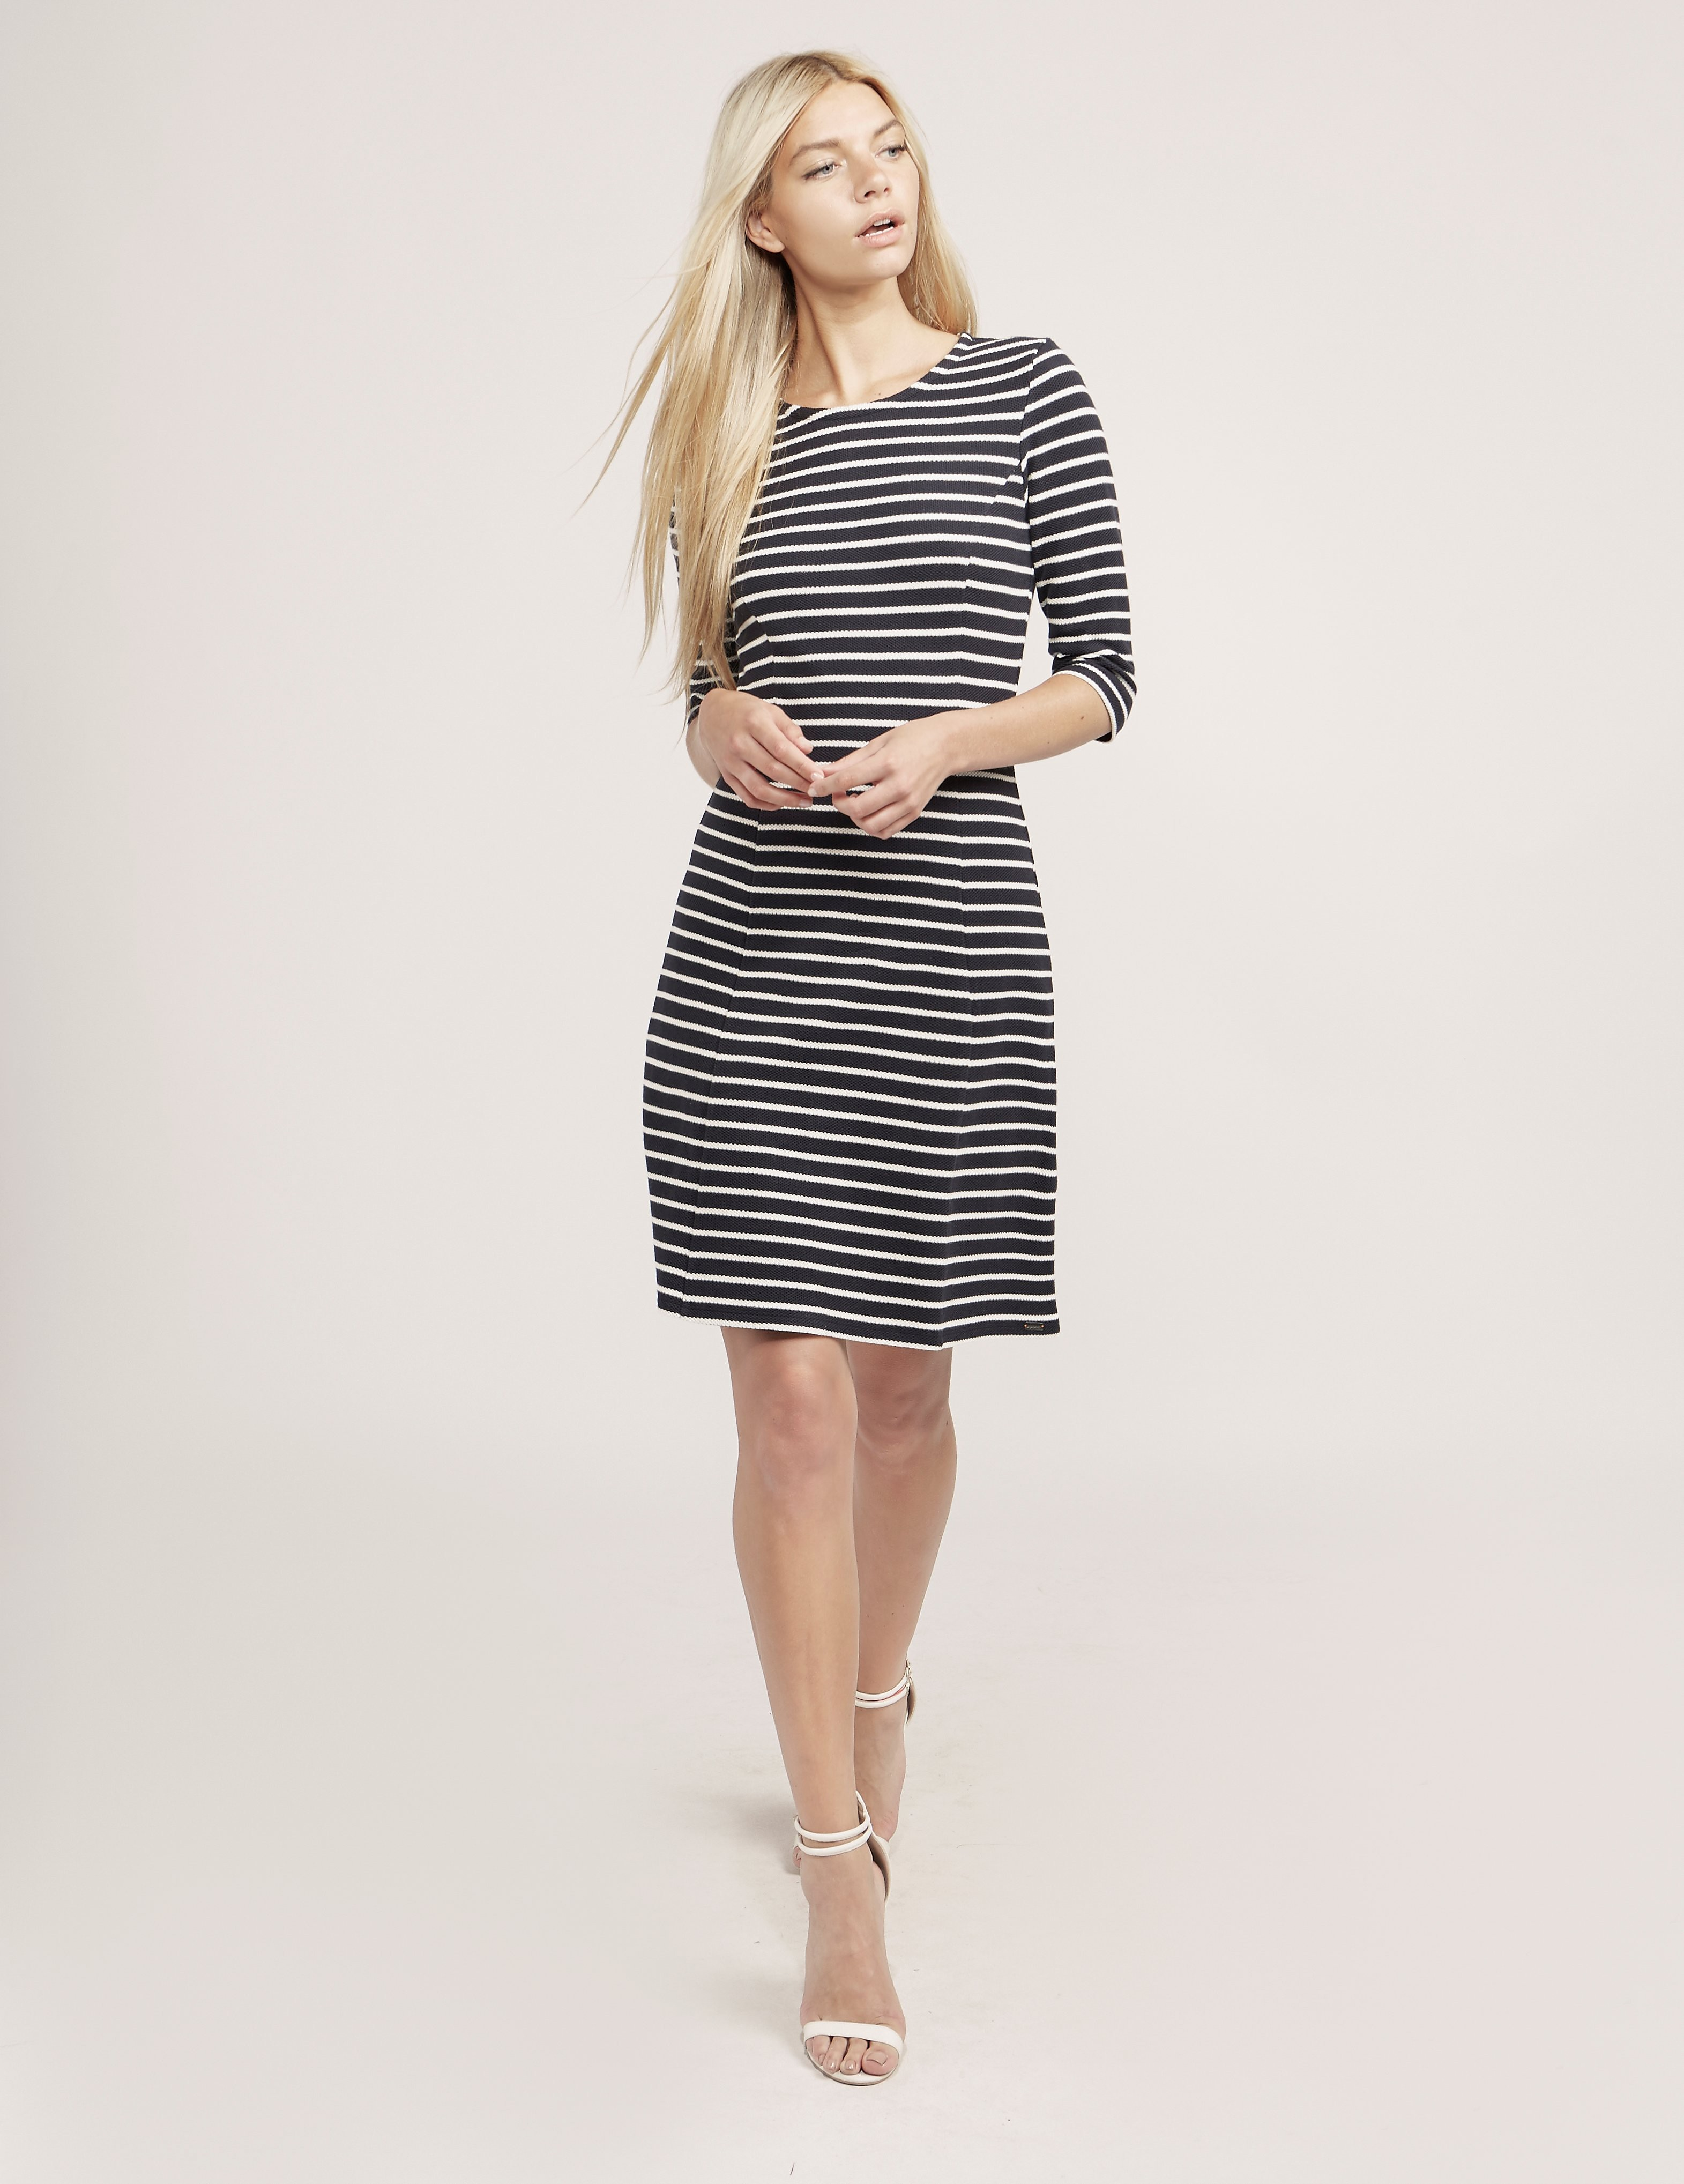 BOSS Orange Stripe Dress